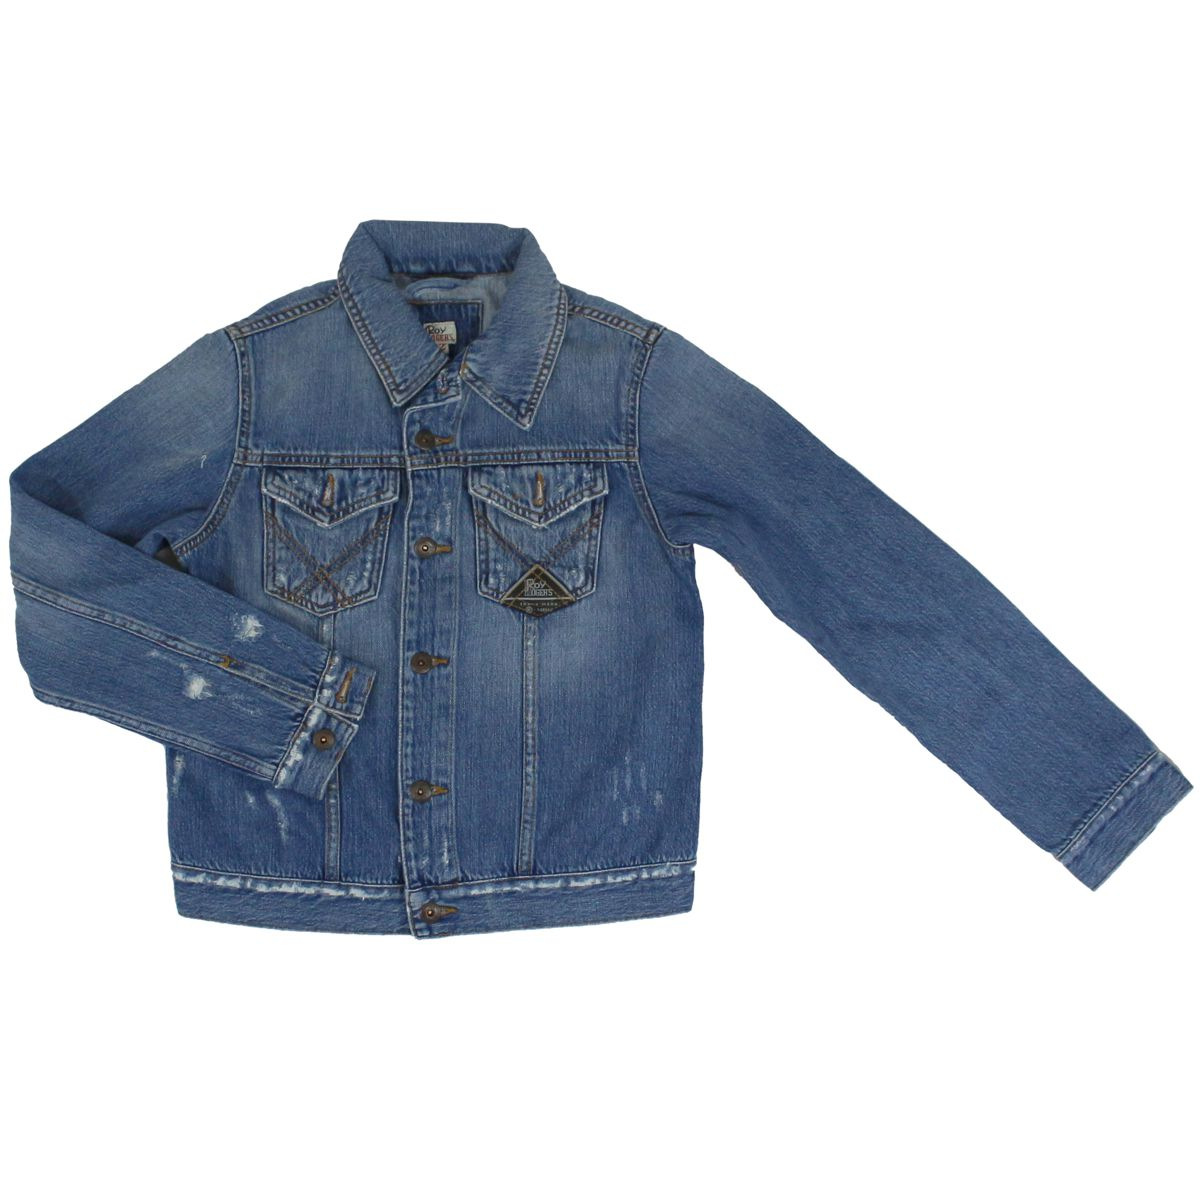 Denim jacket with rips Medium denim ROY ROGER'S